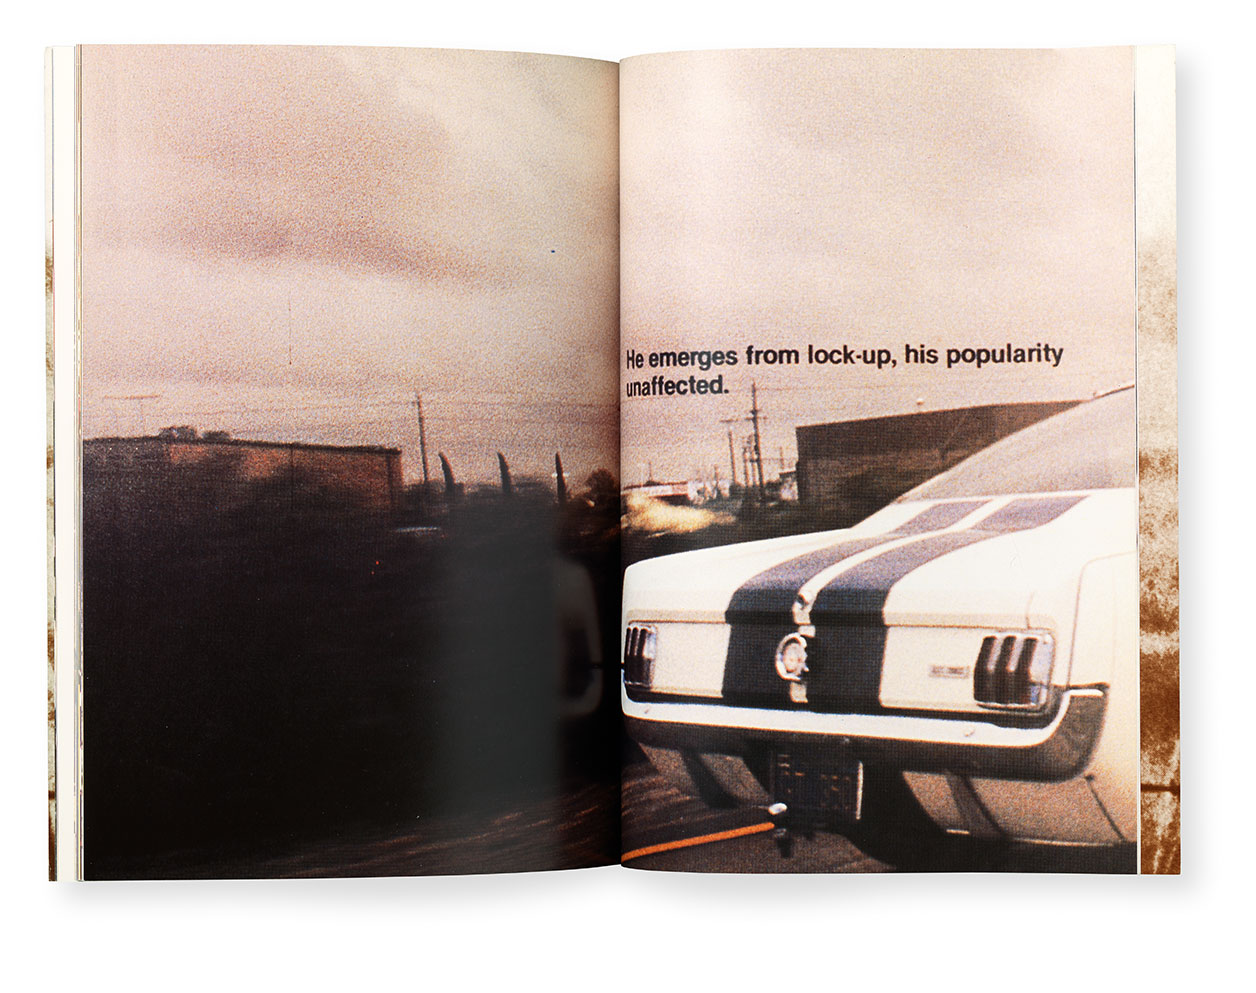 A spread from Richard Prince (1988) by Richard Prince, as reproduced in Artists Who Make Books